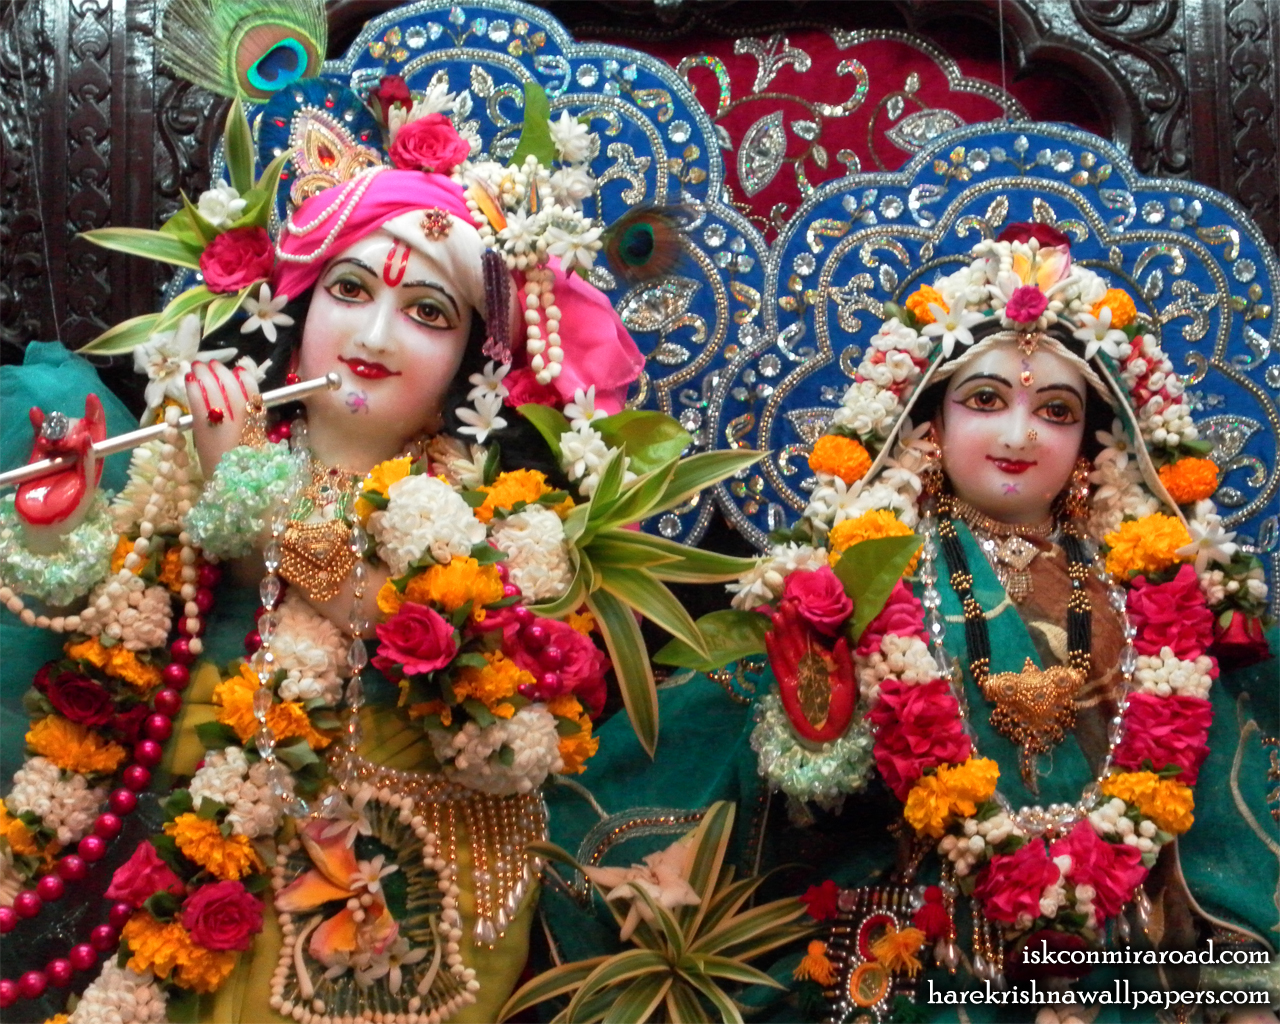 Sri Sri Radha Giridhari Close up Wallpaper (017) Size 1280x1024 Download